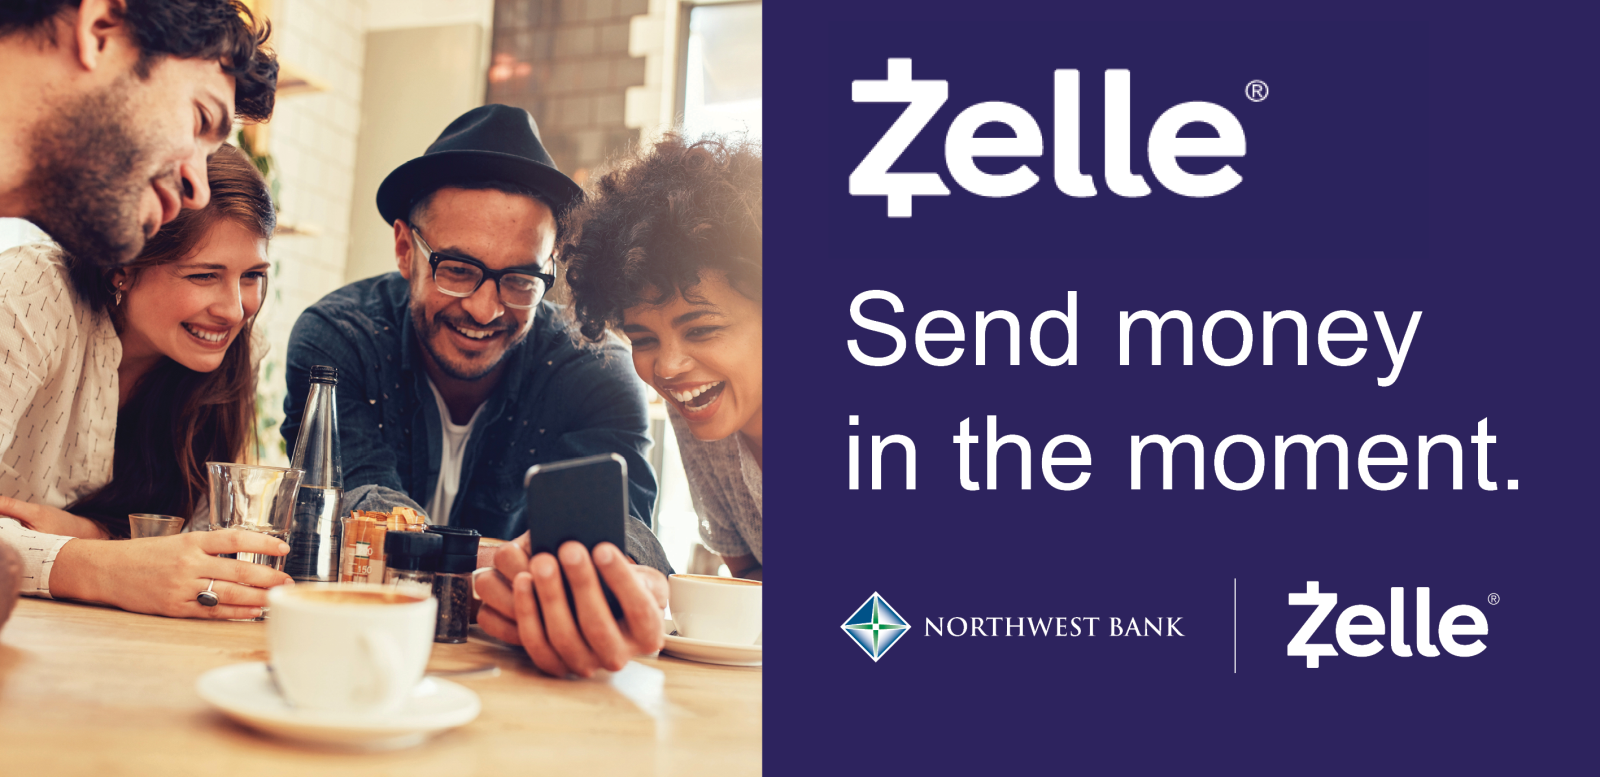 Image of Zelle: Send money int he moment with Zelle